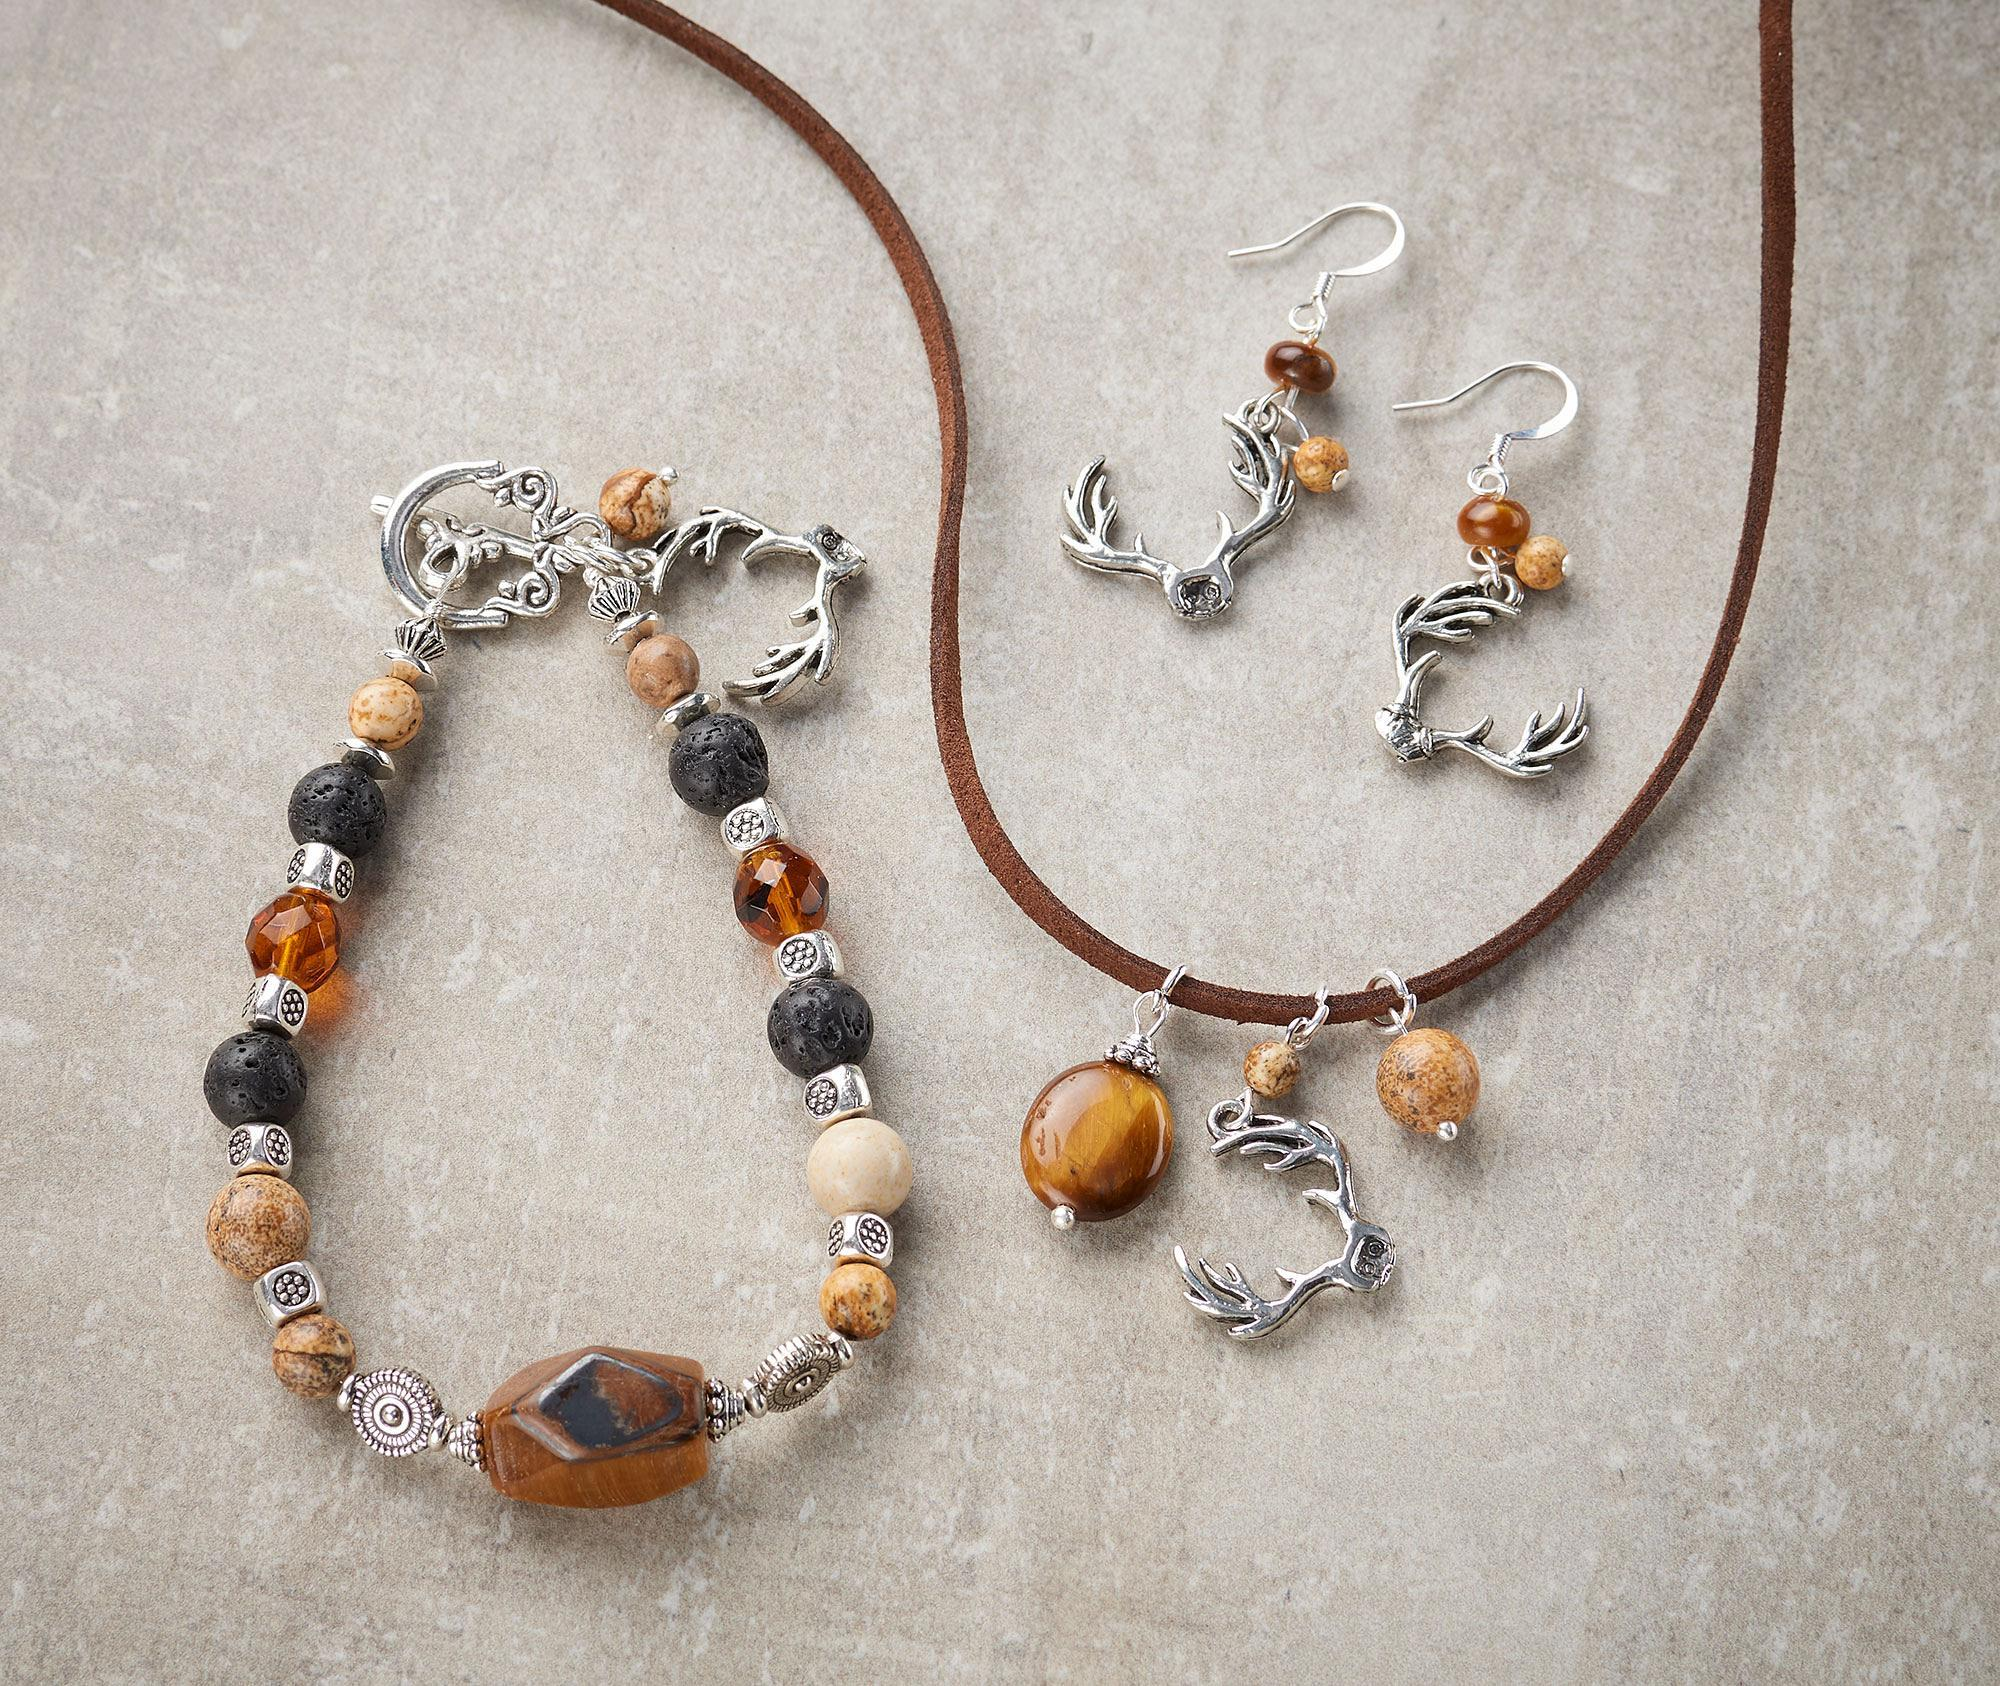 Antler Necklace, Earrings & Bracelet